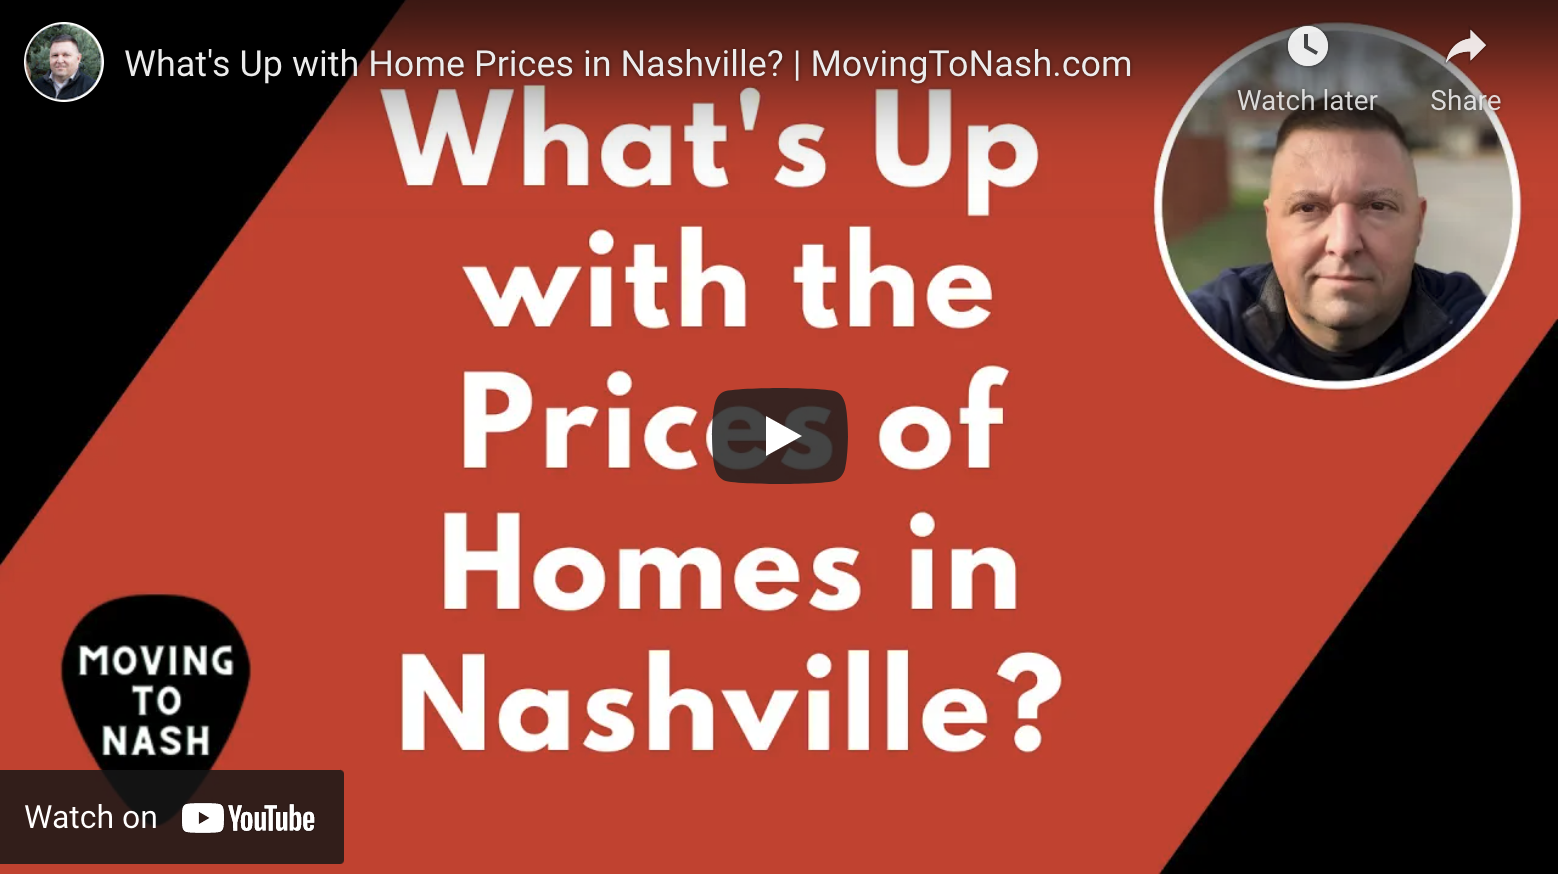 What's Up with the Price of Nashville Homes?